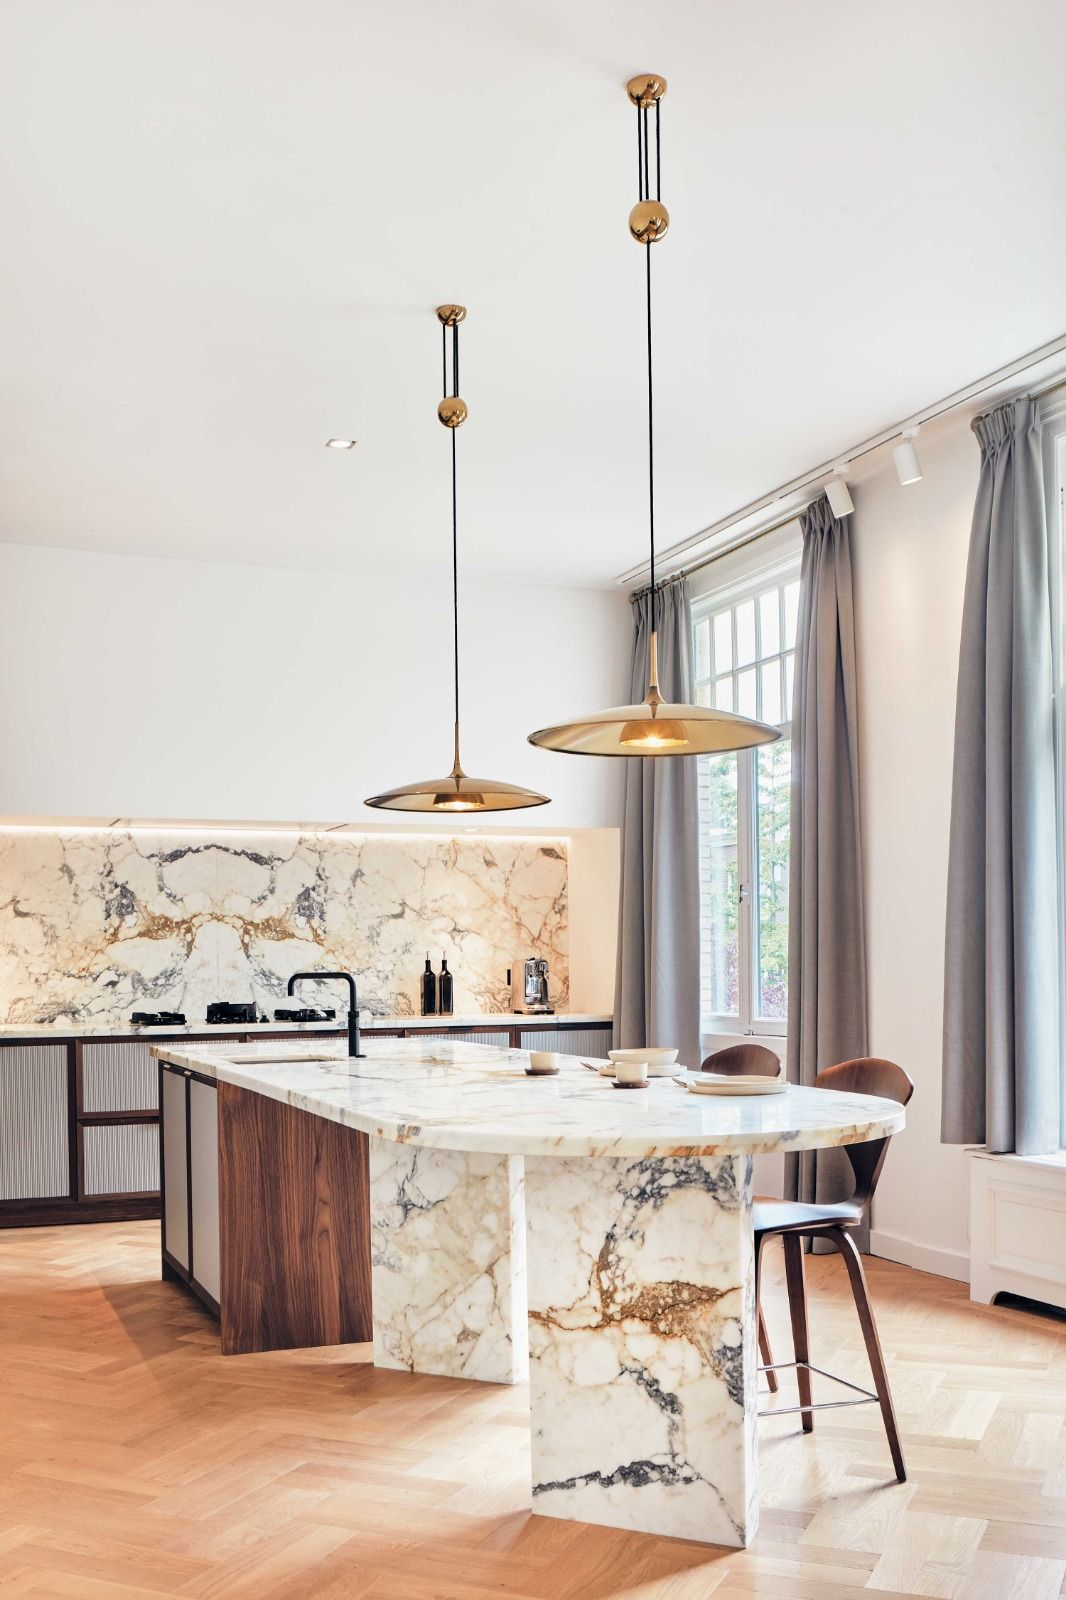 Bespoke Marble Kitchen In Renovated 1905 Amsterdam Apartment Nl